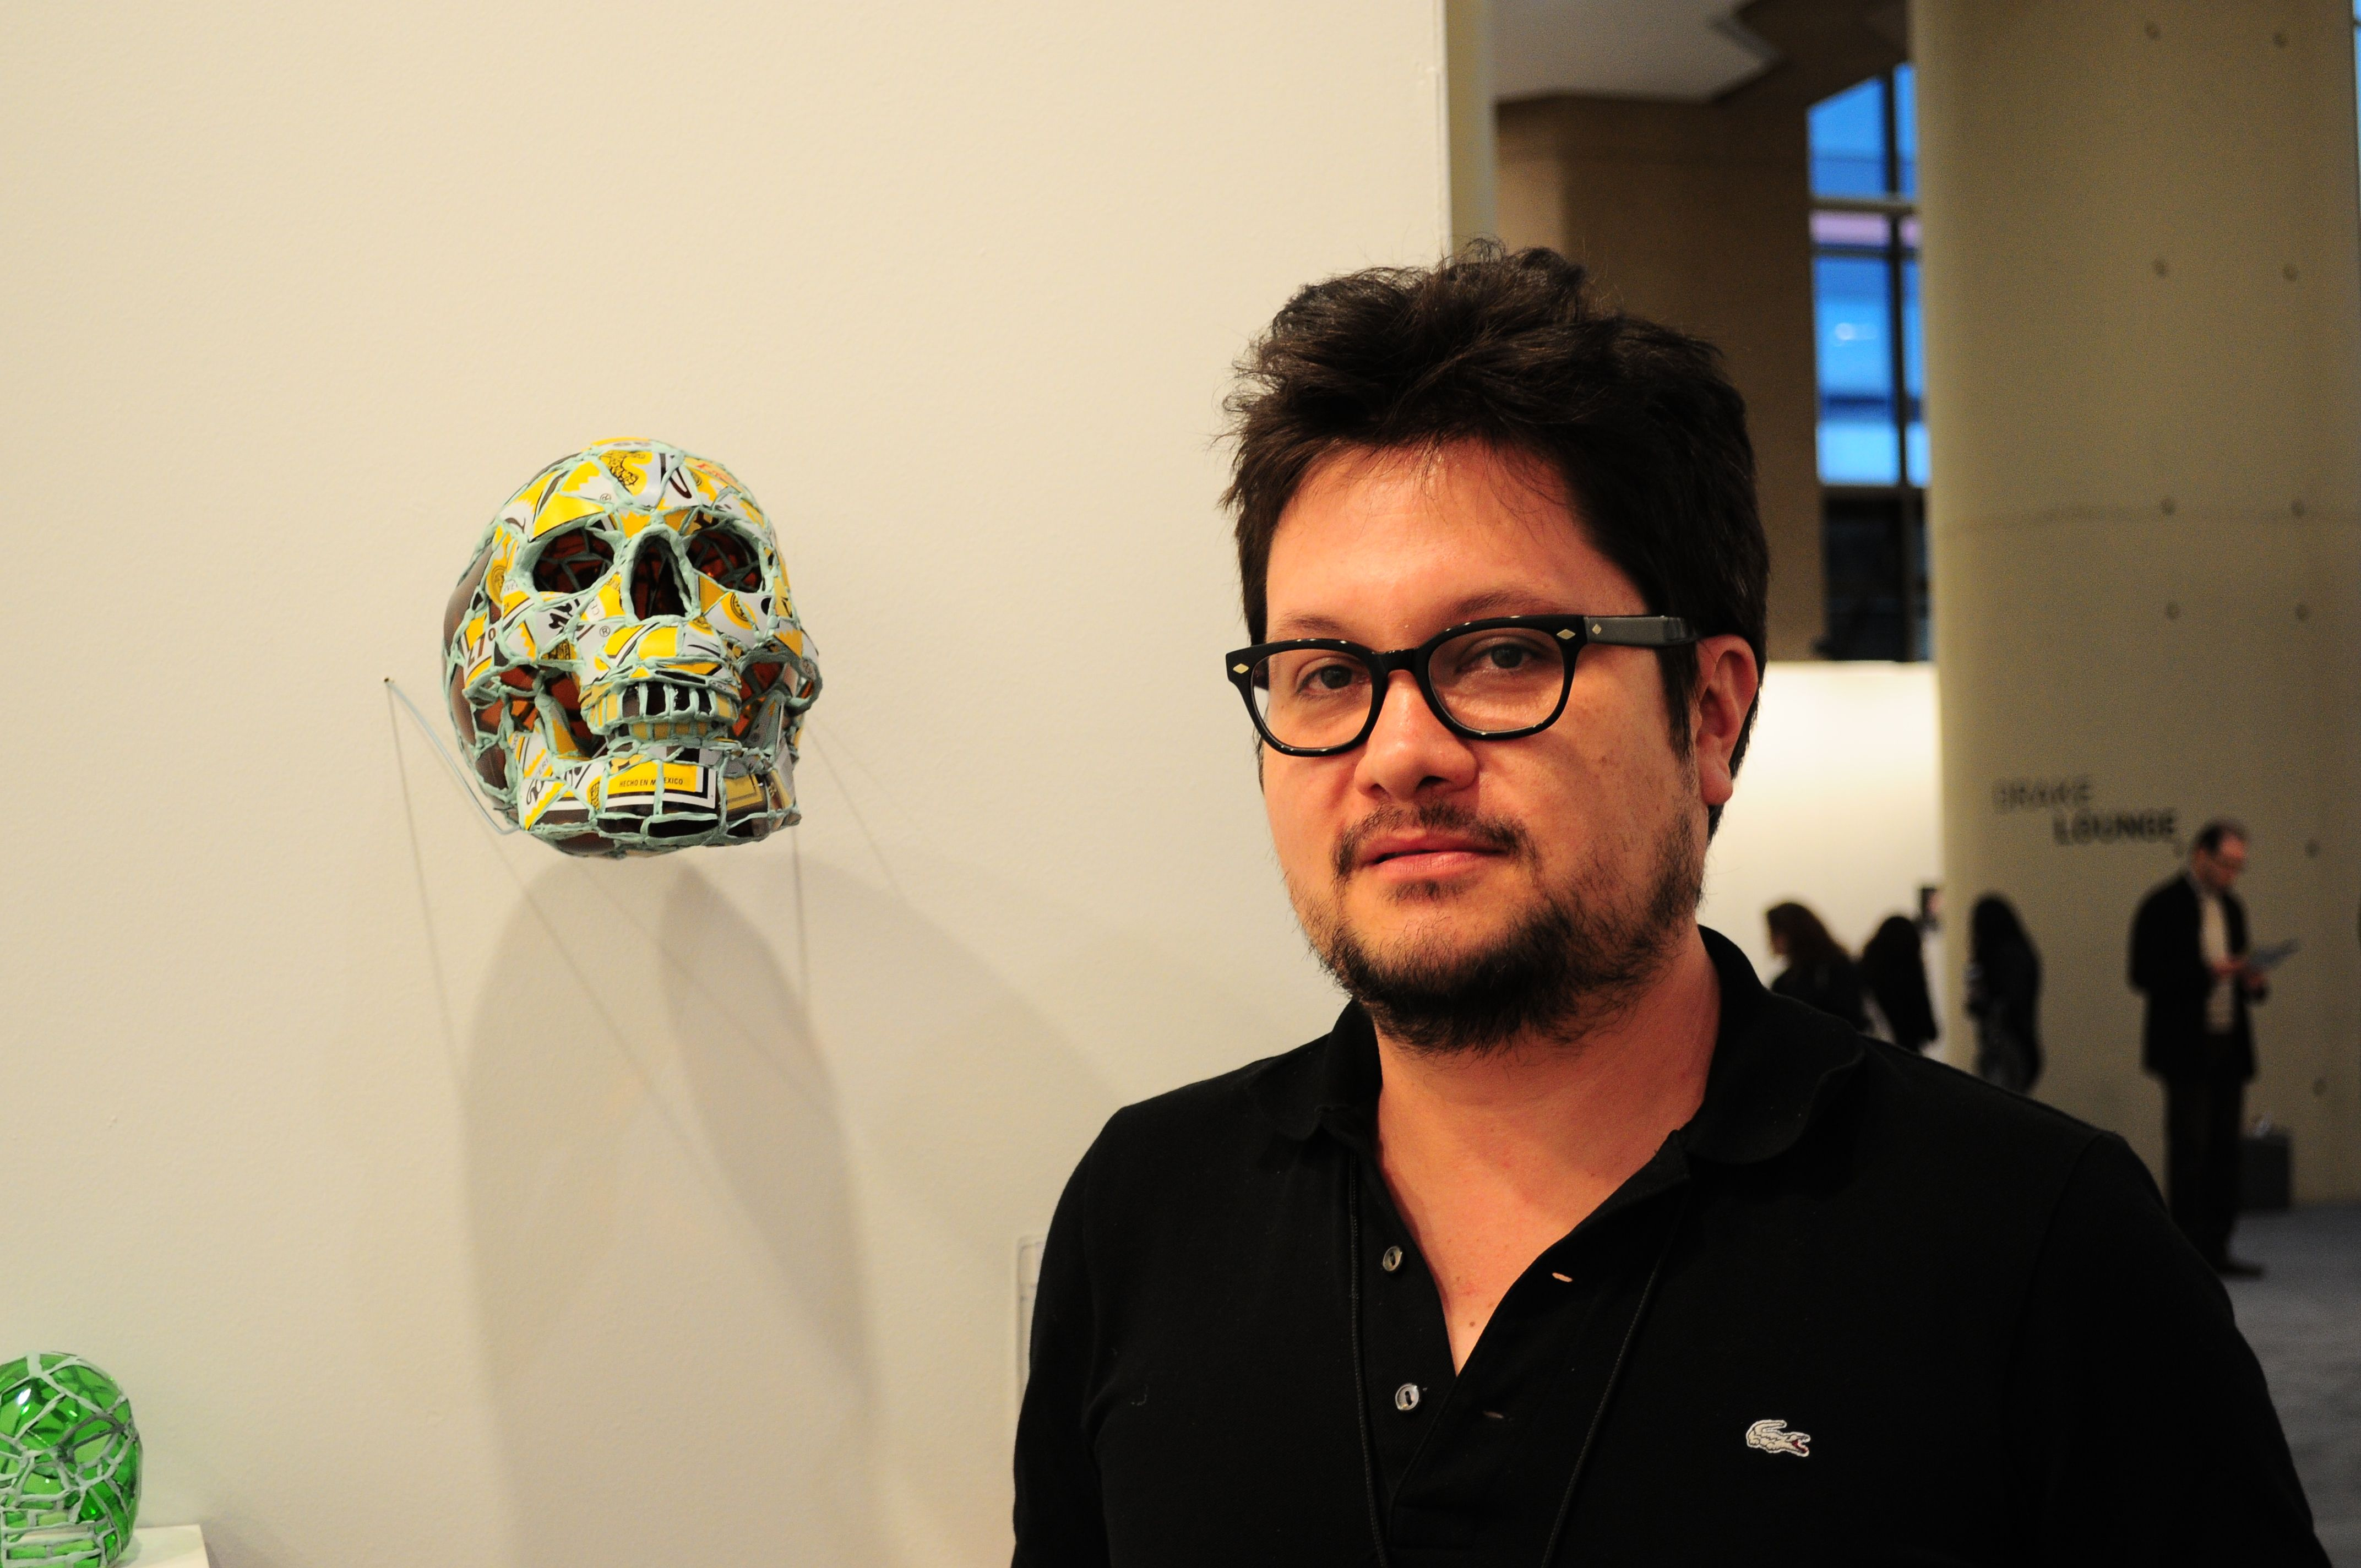 Mexican artist Andres Basurto standing next to his piece Skull.